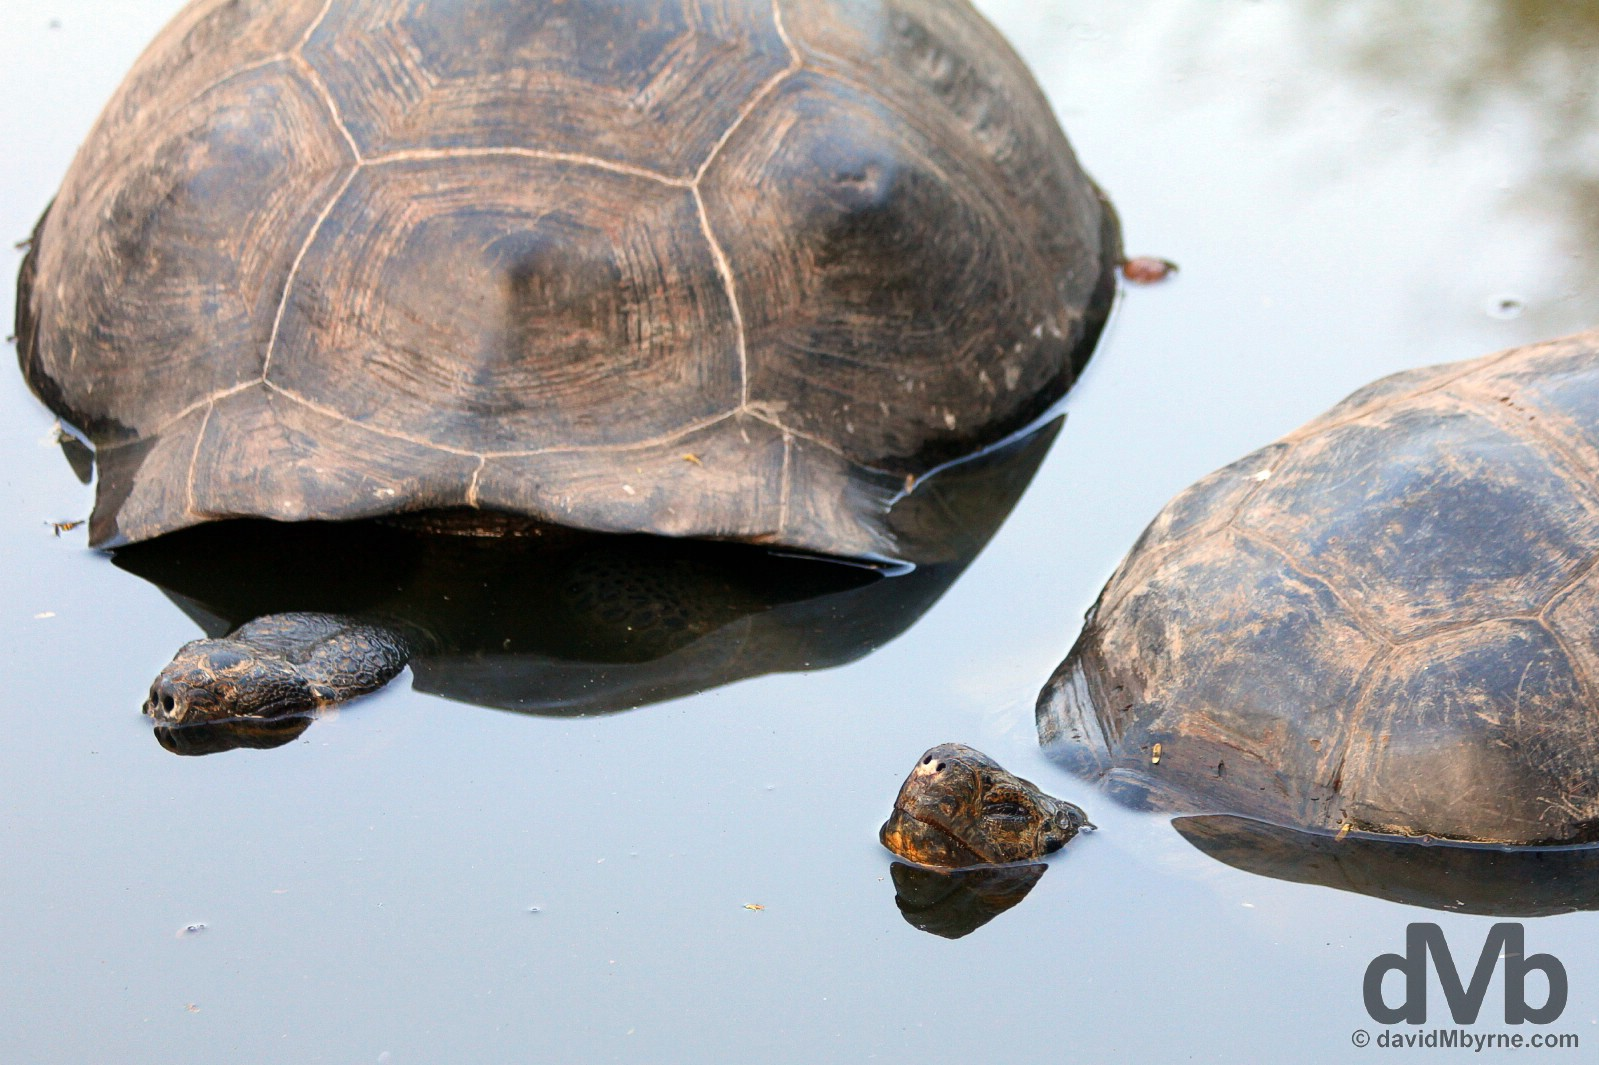 Giant Tortoises in a pool in the Tortoise Breeding Centre on Isla Isabela, Galapagos, Ecuador. July 19, 2015.